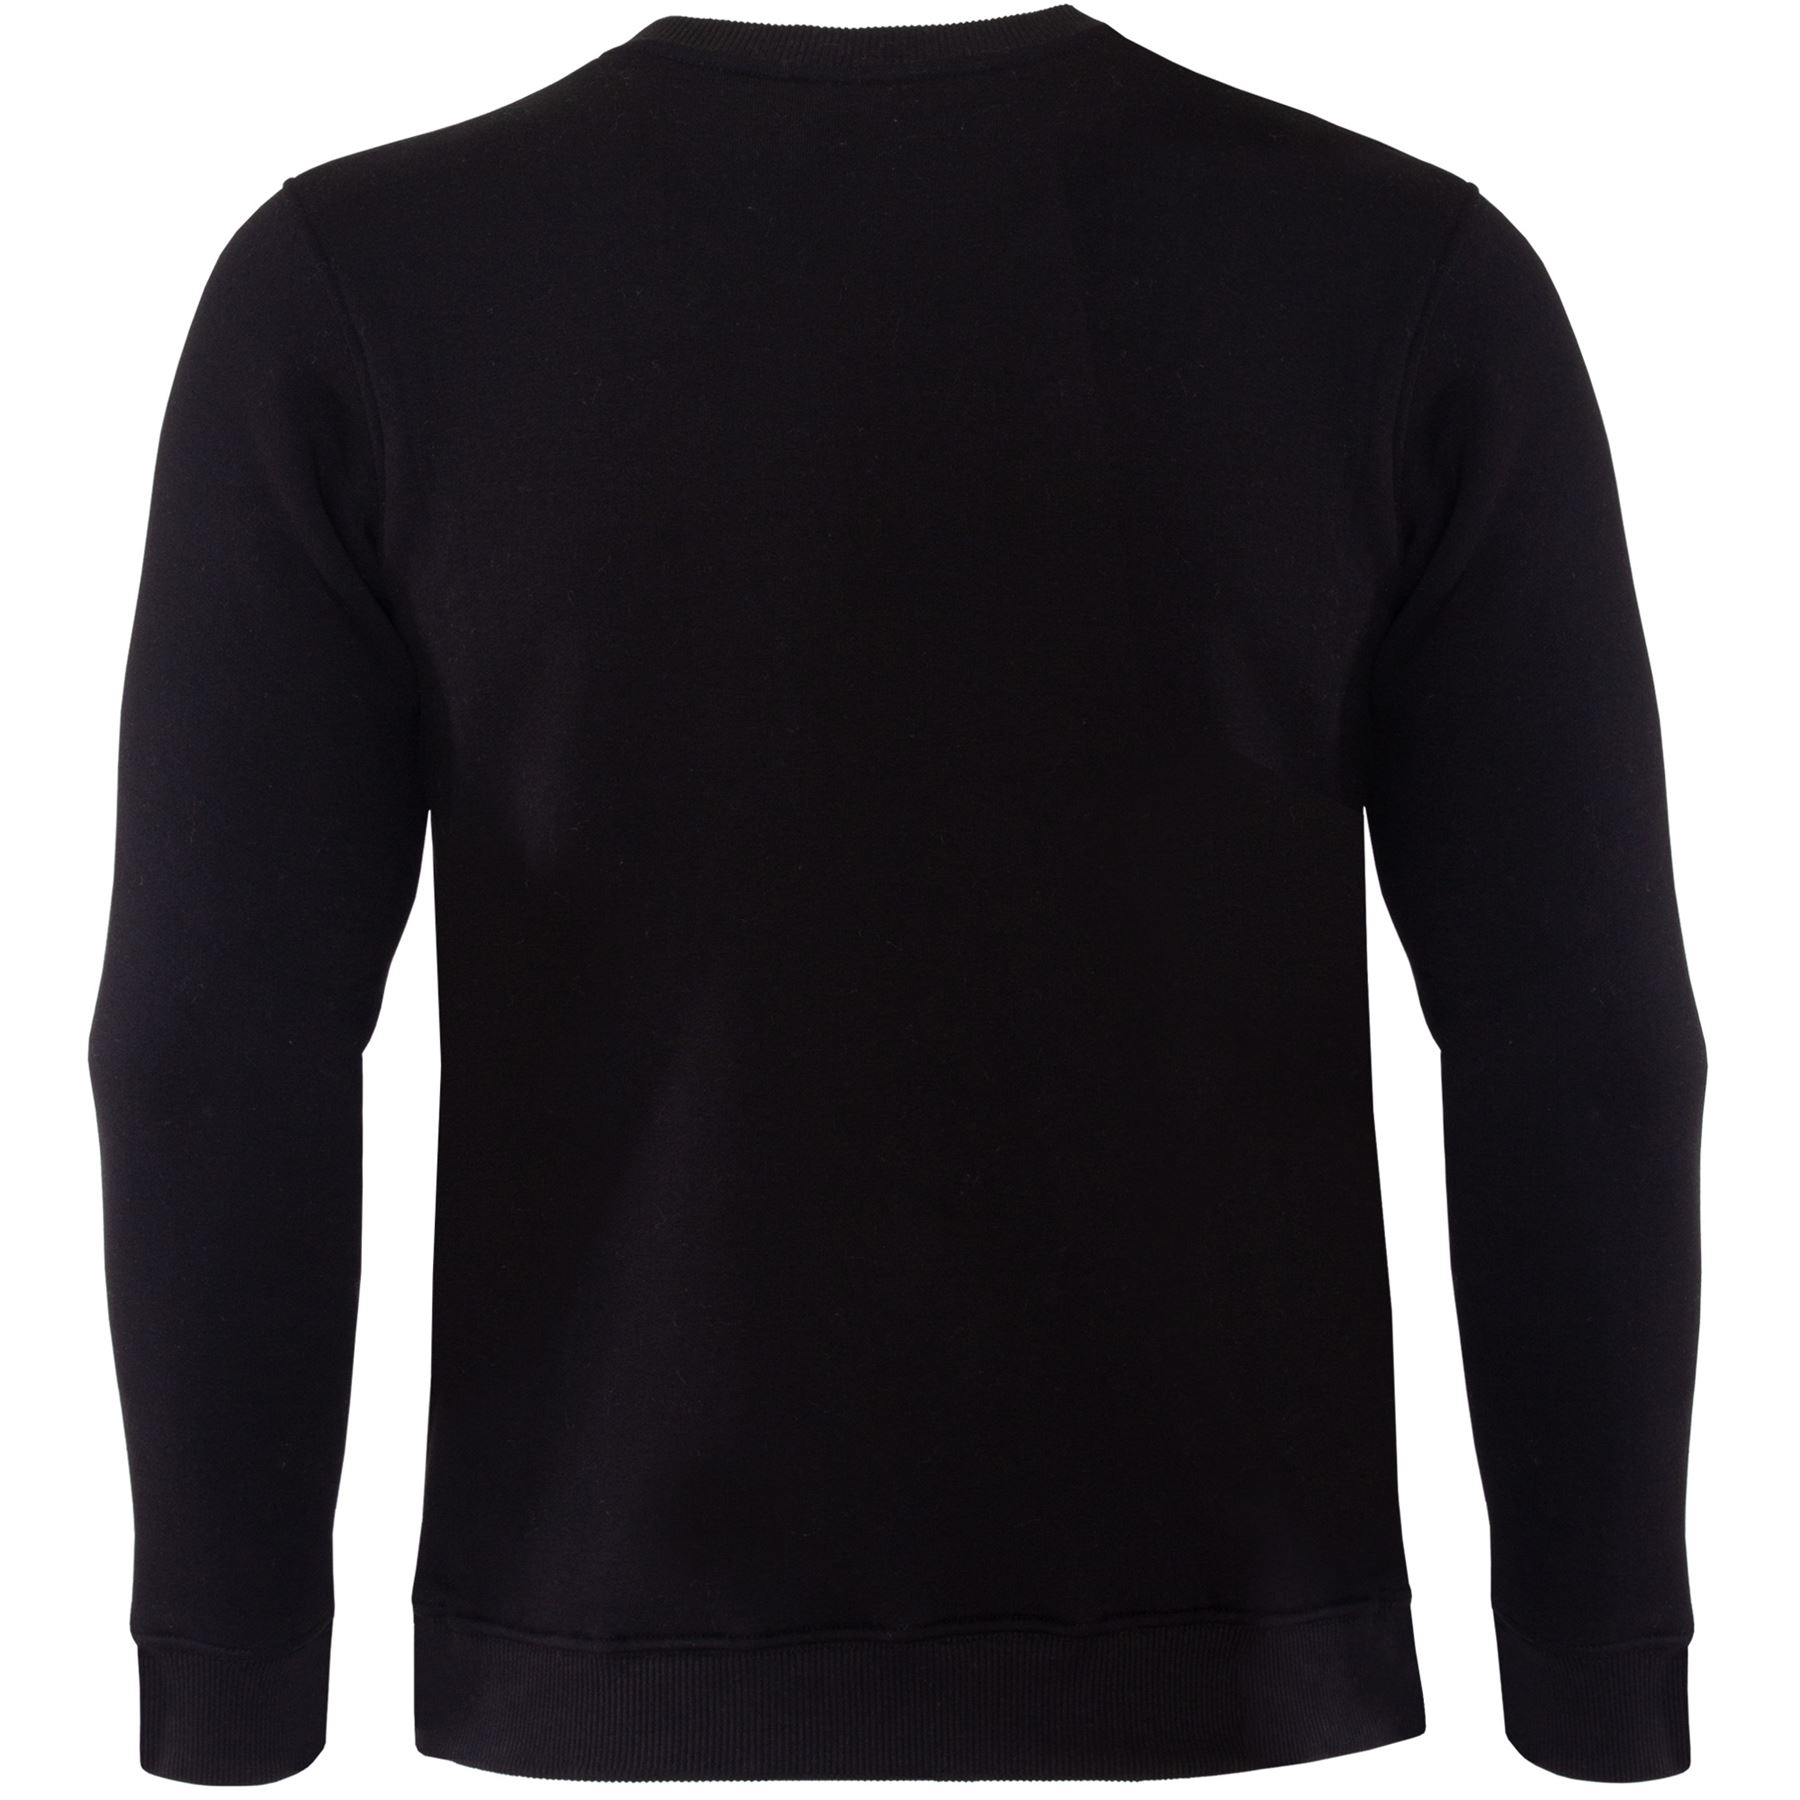 Mens-Crew-Neck-Sweatshirt-Jumper-Casual-Plain-Jersey-Fleece-Sweat-Top-Pullover thumbnail 3